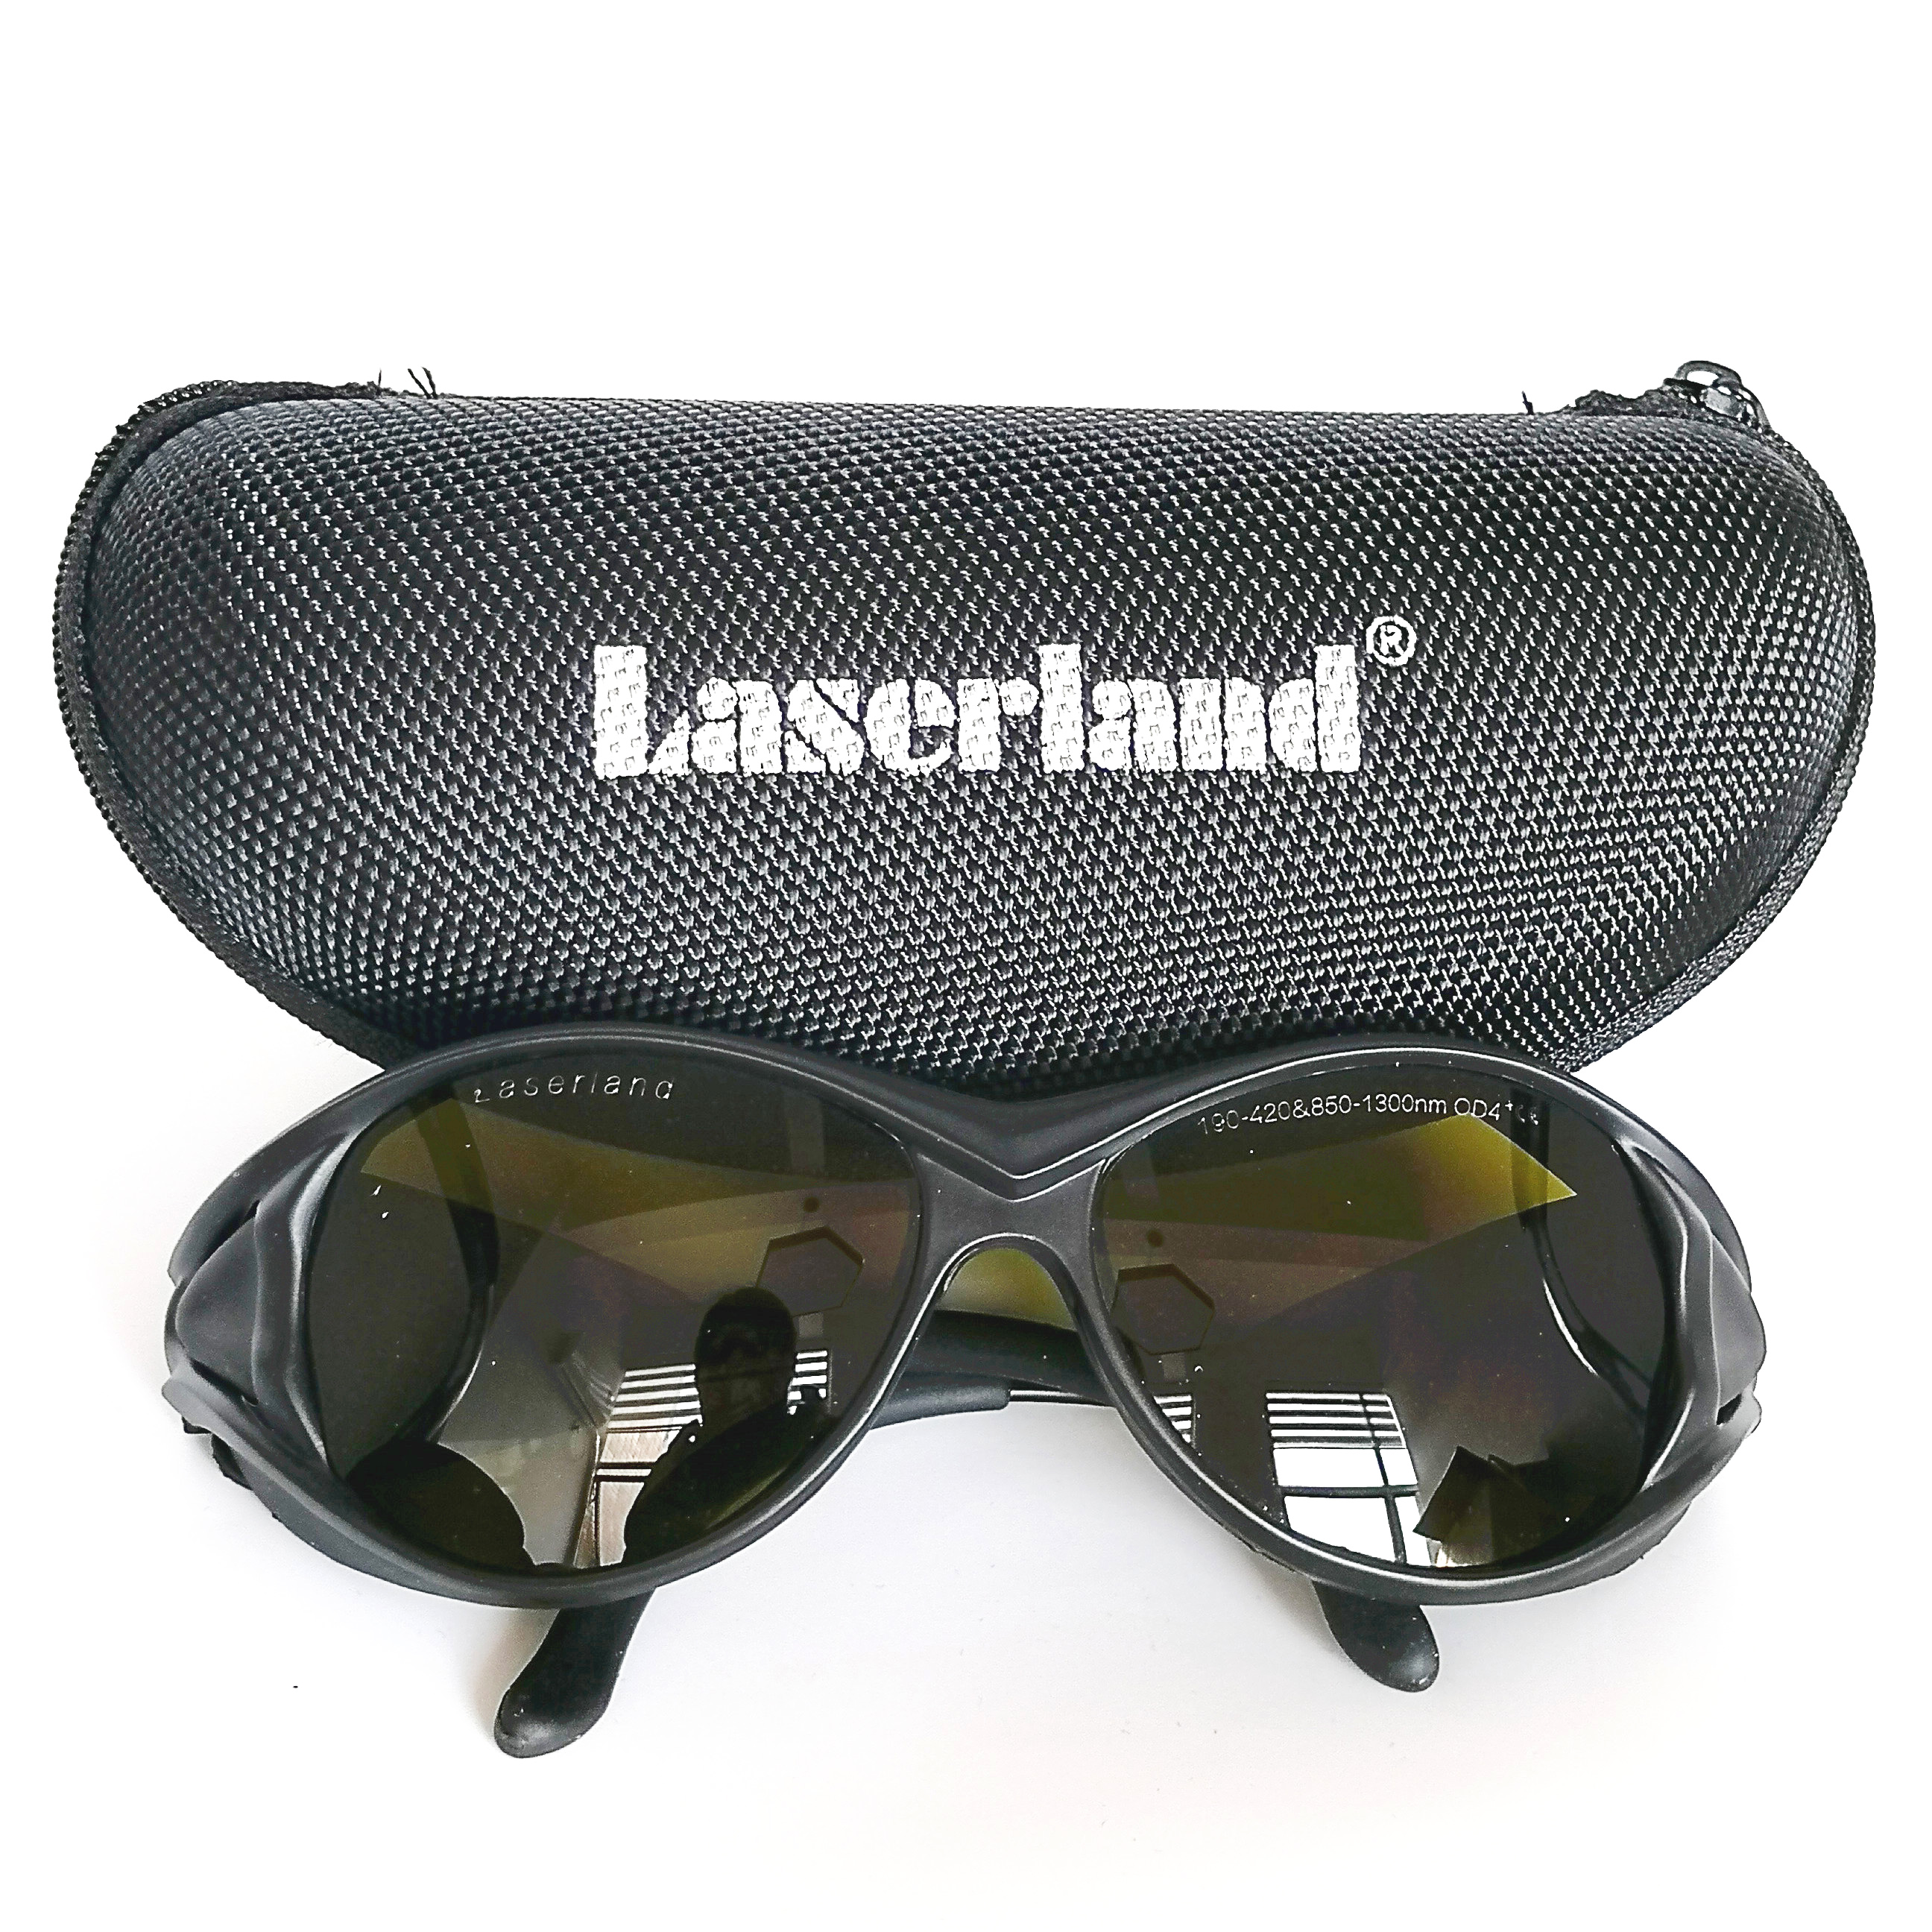 SK-5-2 850nm-1300nm 980nm 1064nm 1070nm 1080nm 1100nm IR Infrared Laser Protective Goggles Safety Glasses CE for Nd: YAG,Fiber wholesale 600 1100nm laser safety glasses o d 5 ce certified for 635nm 650nm 660nm 755nm 808nm 980nm 1064nm